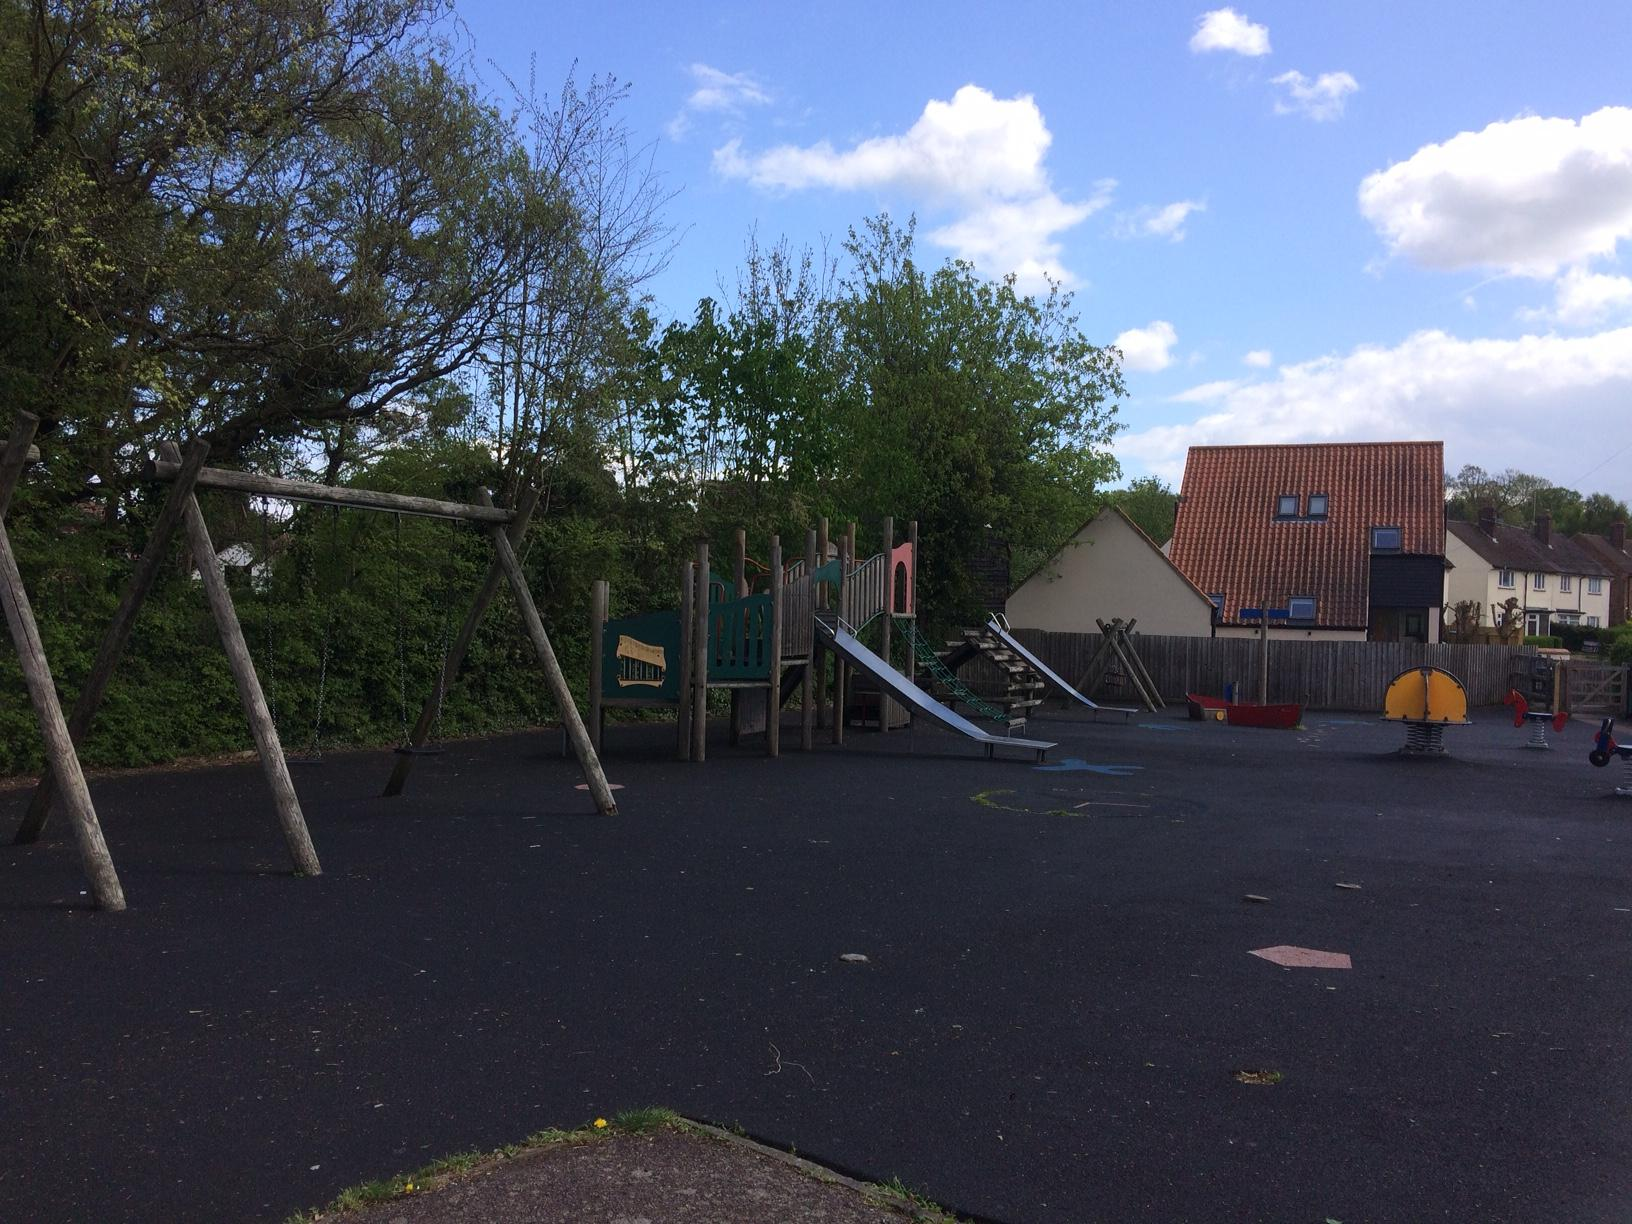 The playground as it currently is